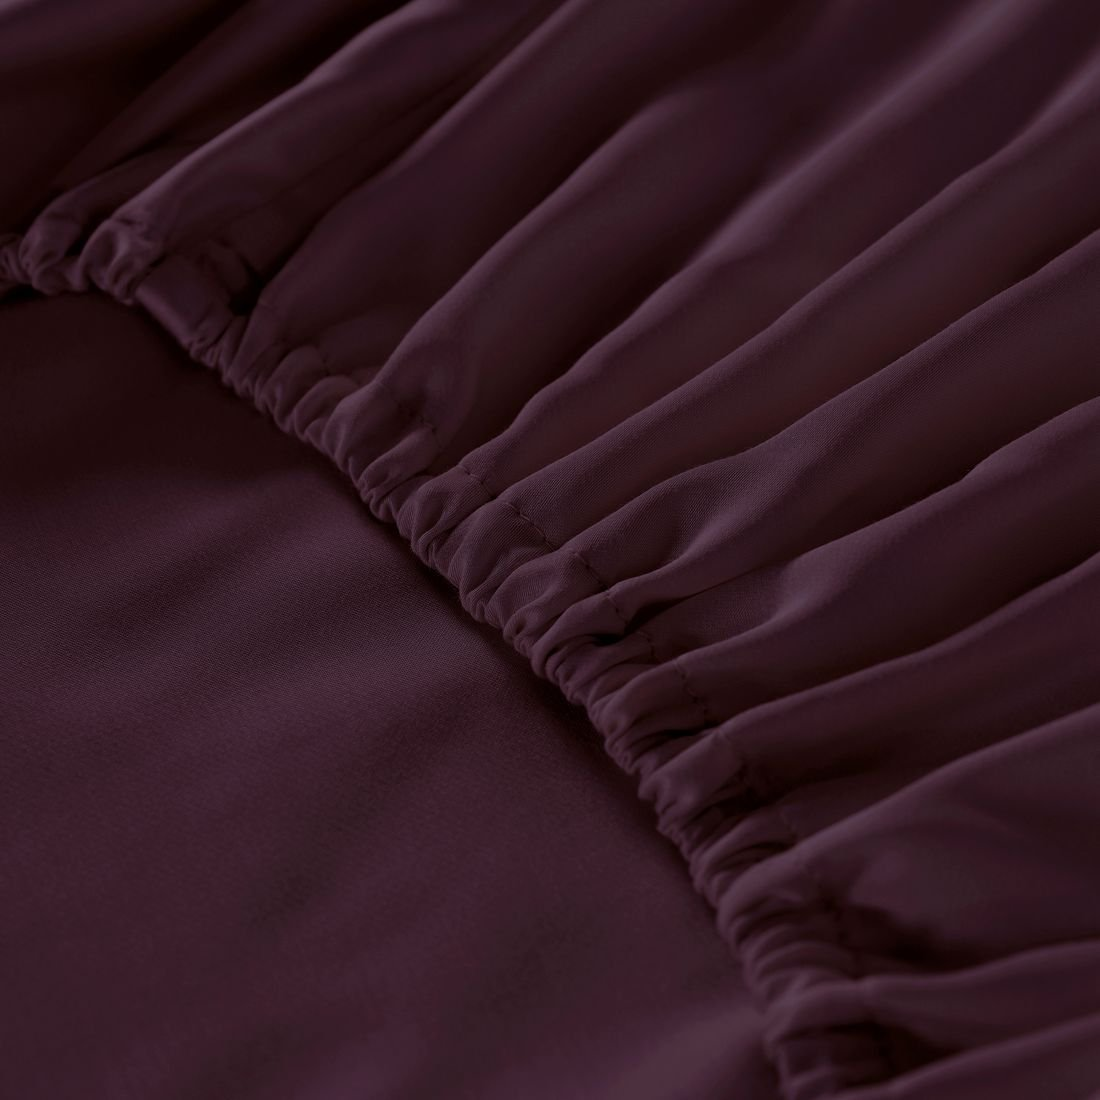 Natural Quality 100% Tencel from Eucalyptus Wood Pulp Bed Sheet 4-Piece Set - Eco-friendly, Refreshing & Silky Soft Fiber, Hypoallergenic, Mist & Odors Resistant Bedding, Burgundy King by Whitney Home Textile (Image #6)